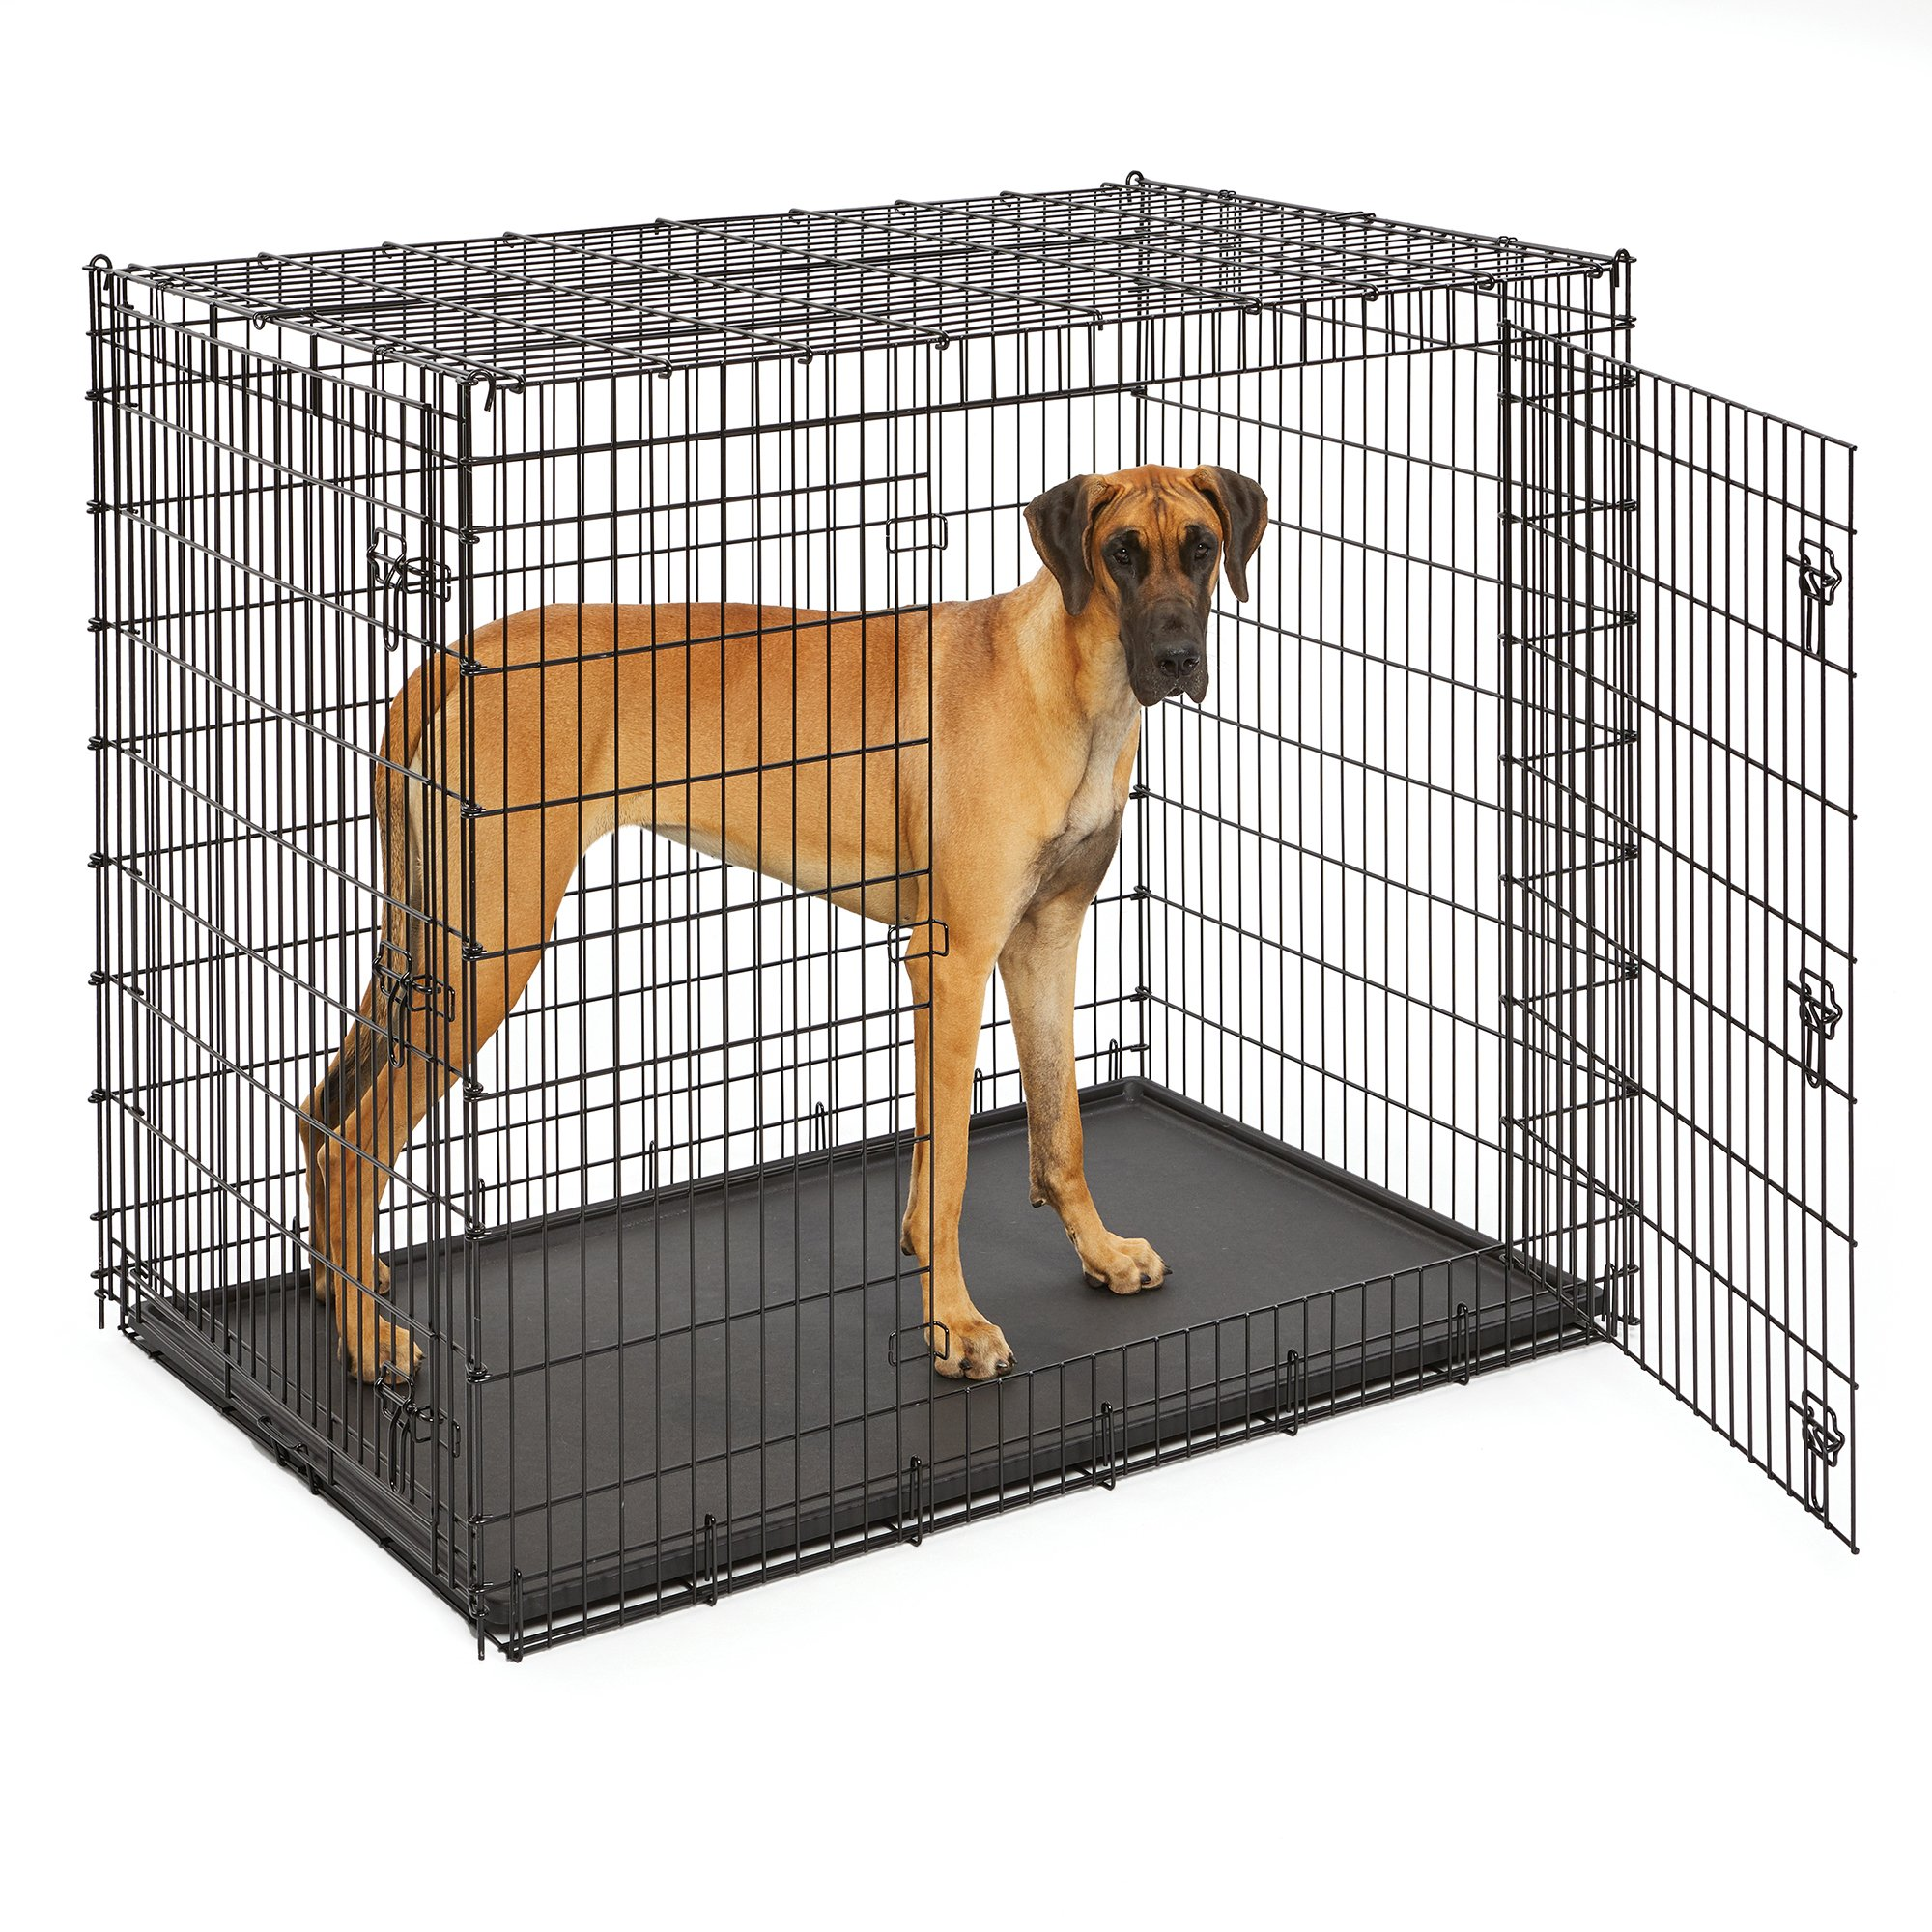 MidWest Homes for Pets XXL Giant Dog Crate | 54 Inch Long Ginormous Double Door Dog Crate Ideal for a Great Dane, Mastiff, St. Bernard & Other XXL Dog Breeds by MidWest Homes for Pets